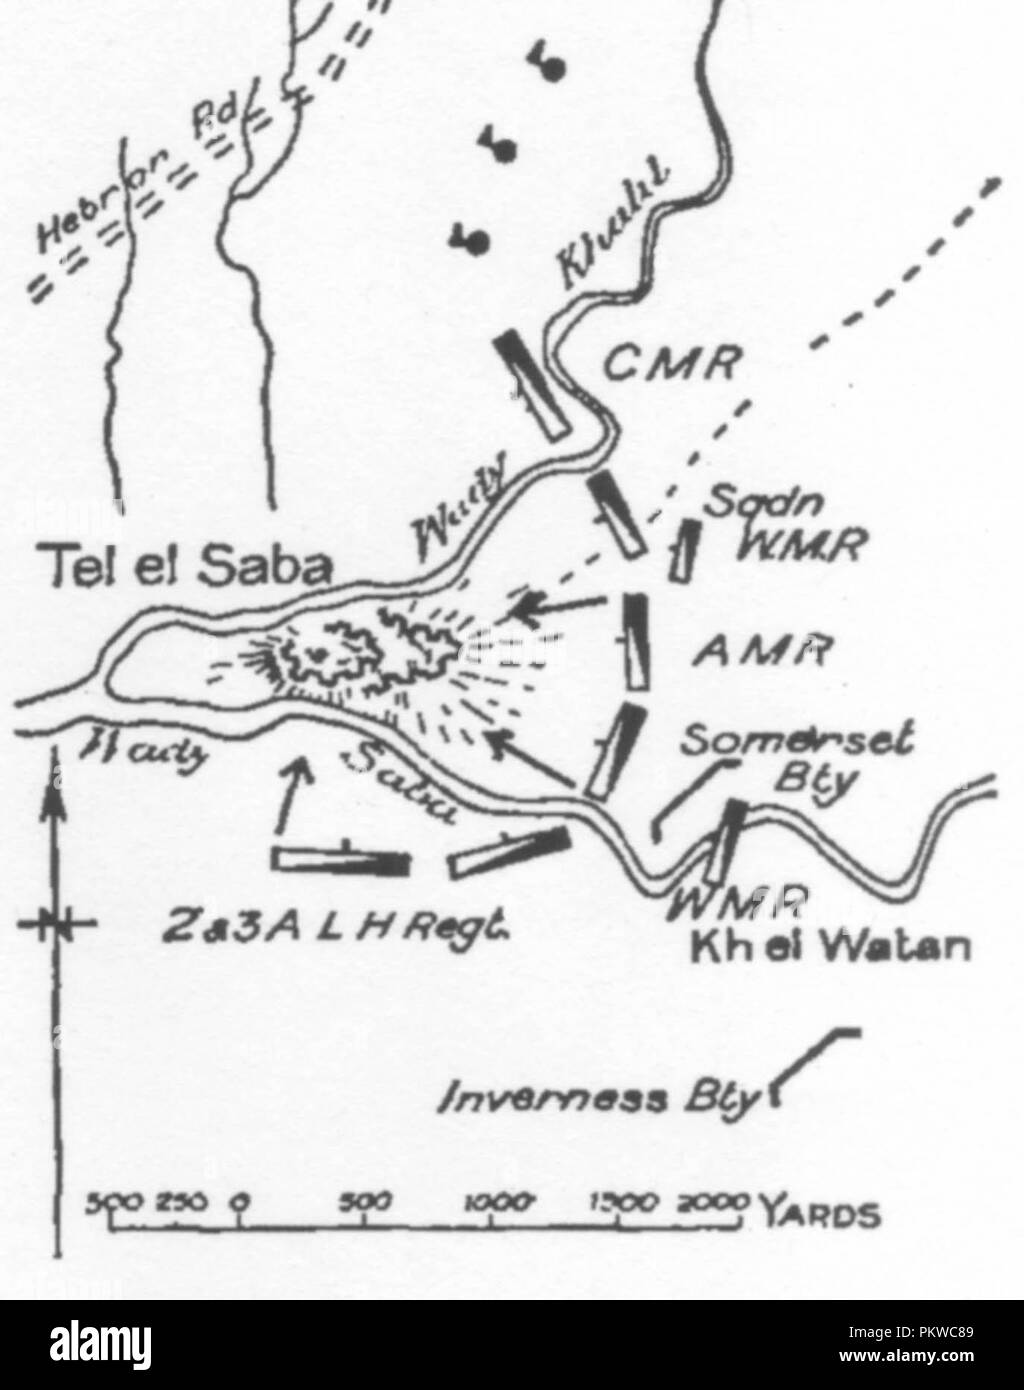 Gullett's Sketch Map on page 390 of the Tel el Saba attack - Stock Image